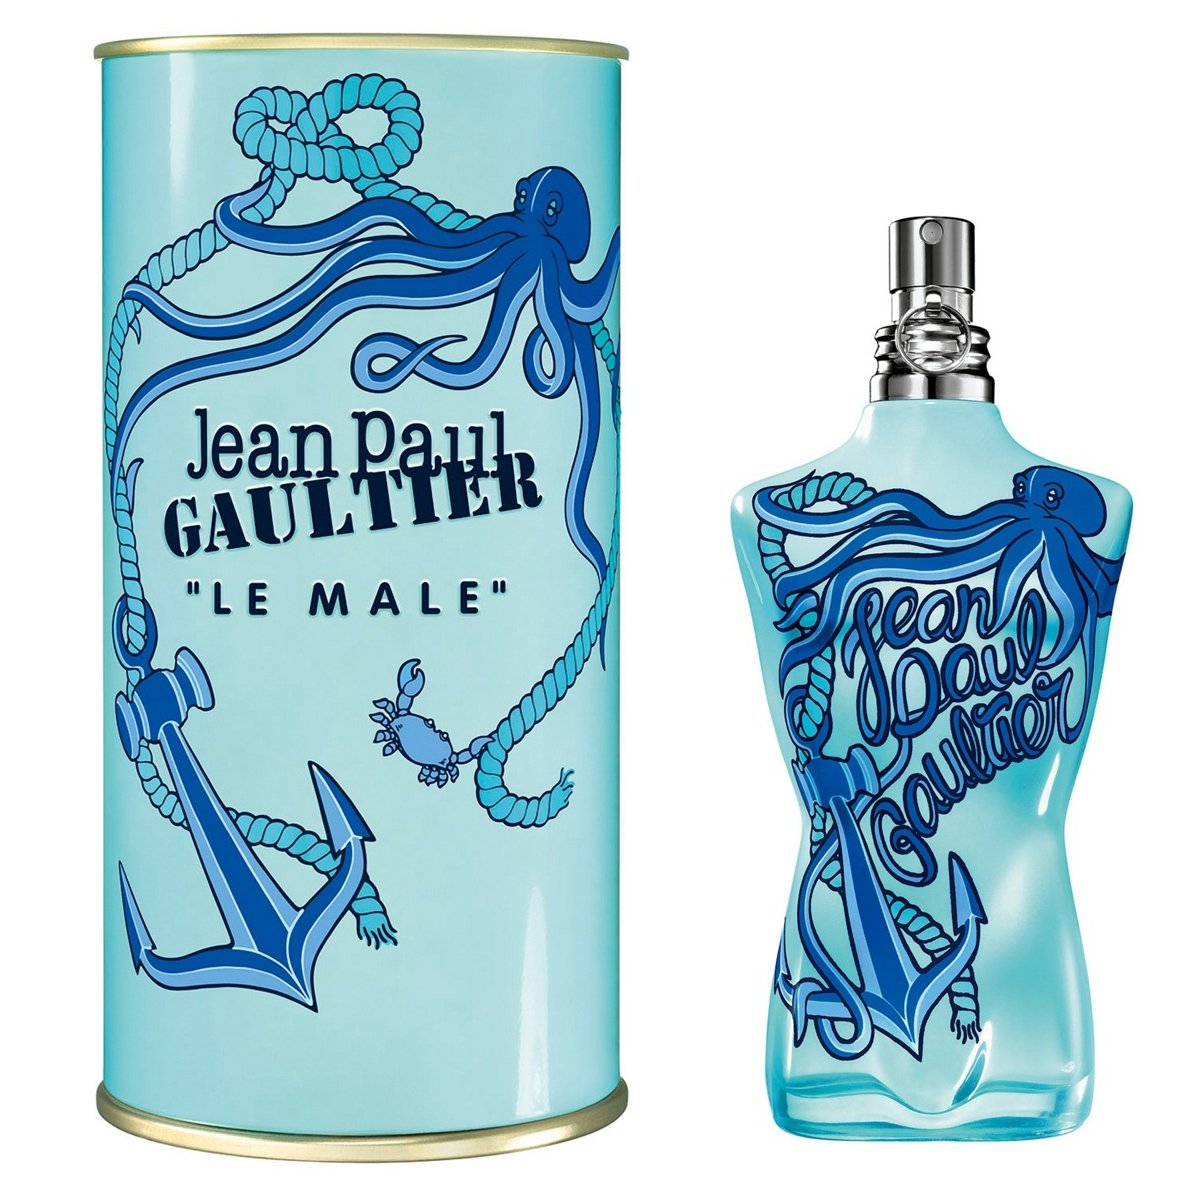 Jean Paul Gaultier Summer Cologne Tonique Spray, Edition 2014, 4.2 Ounce